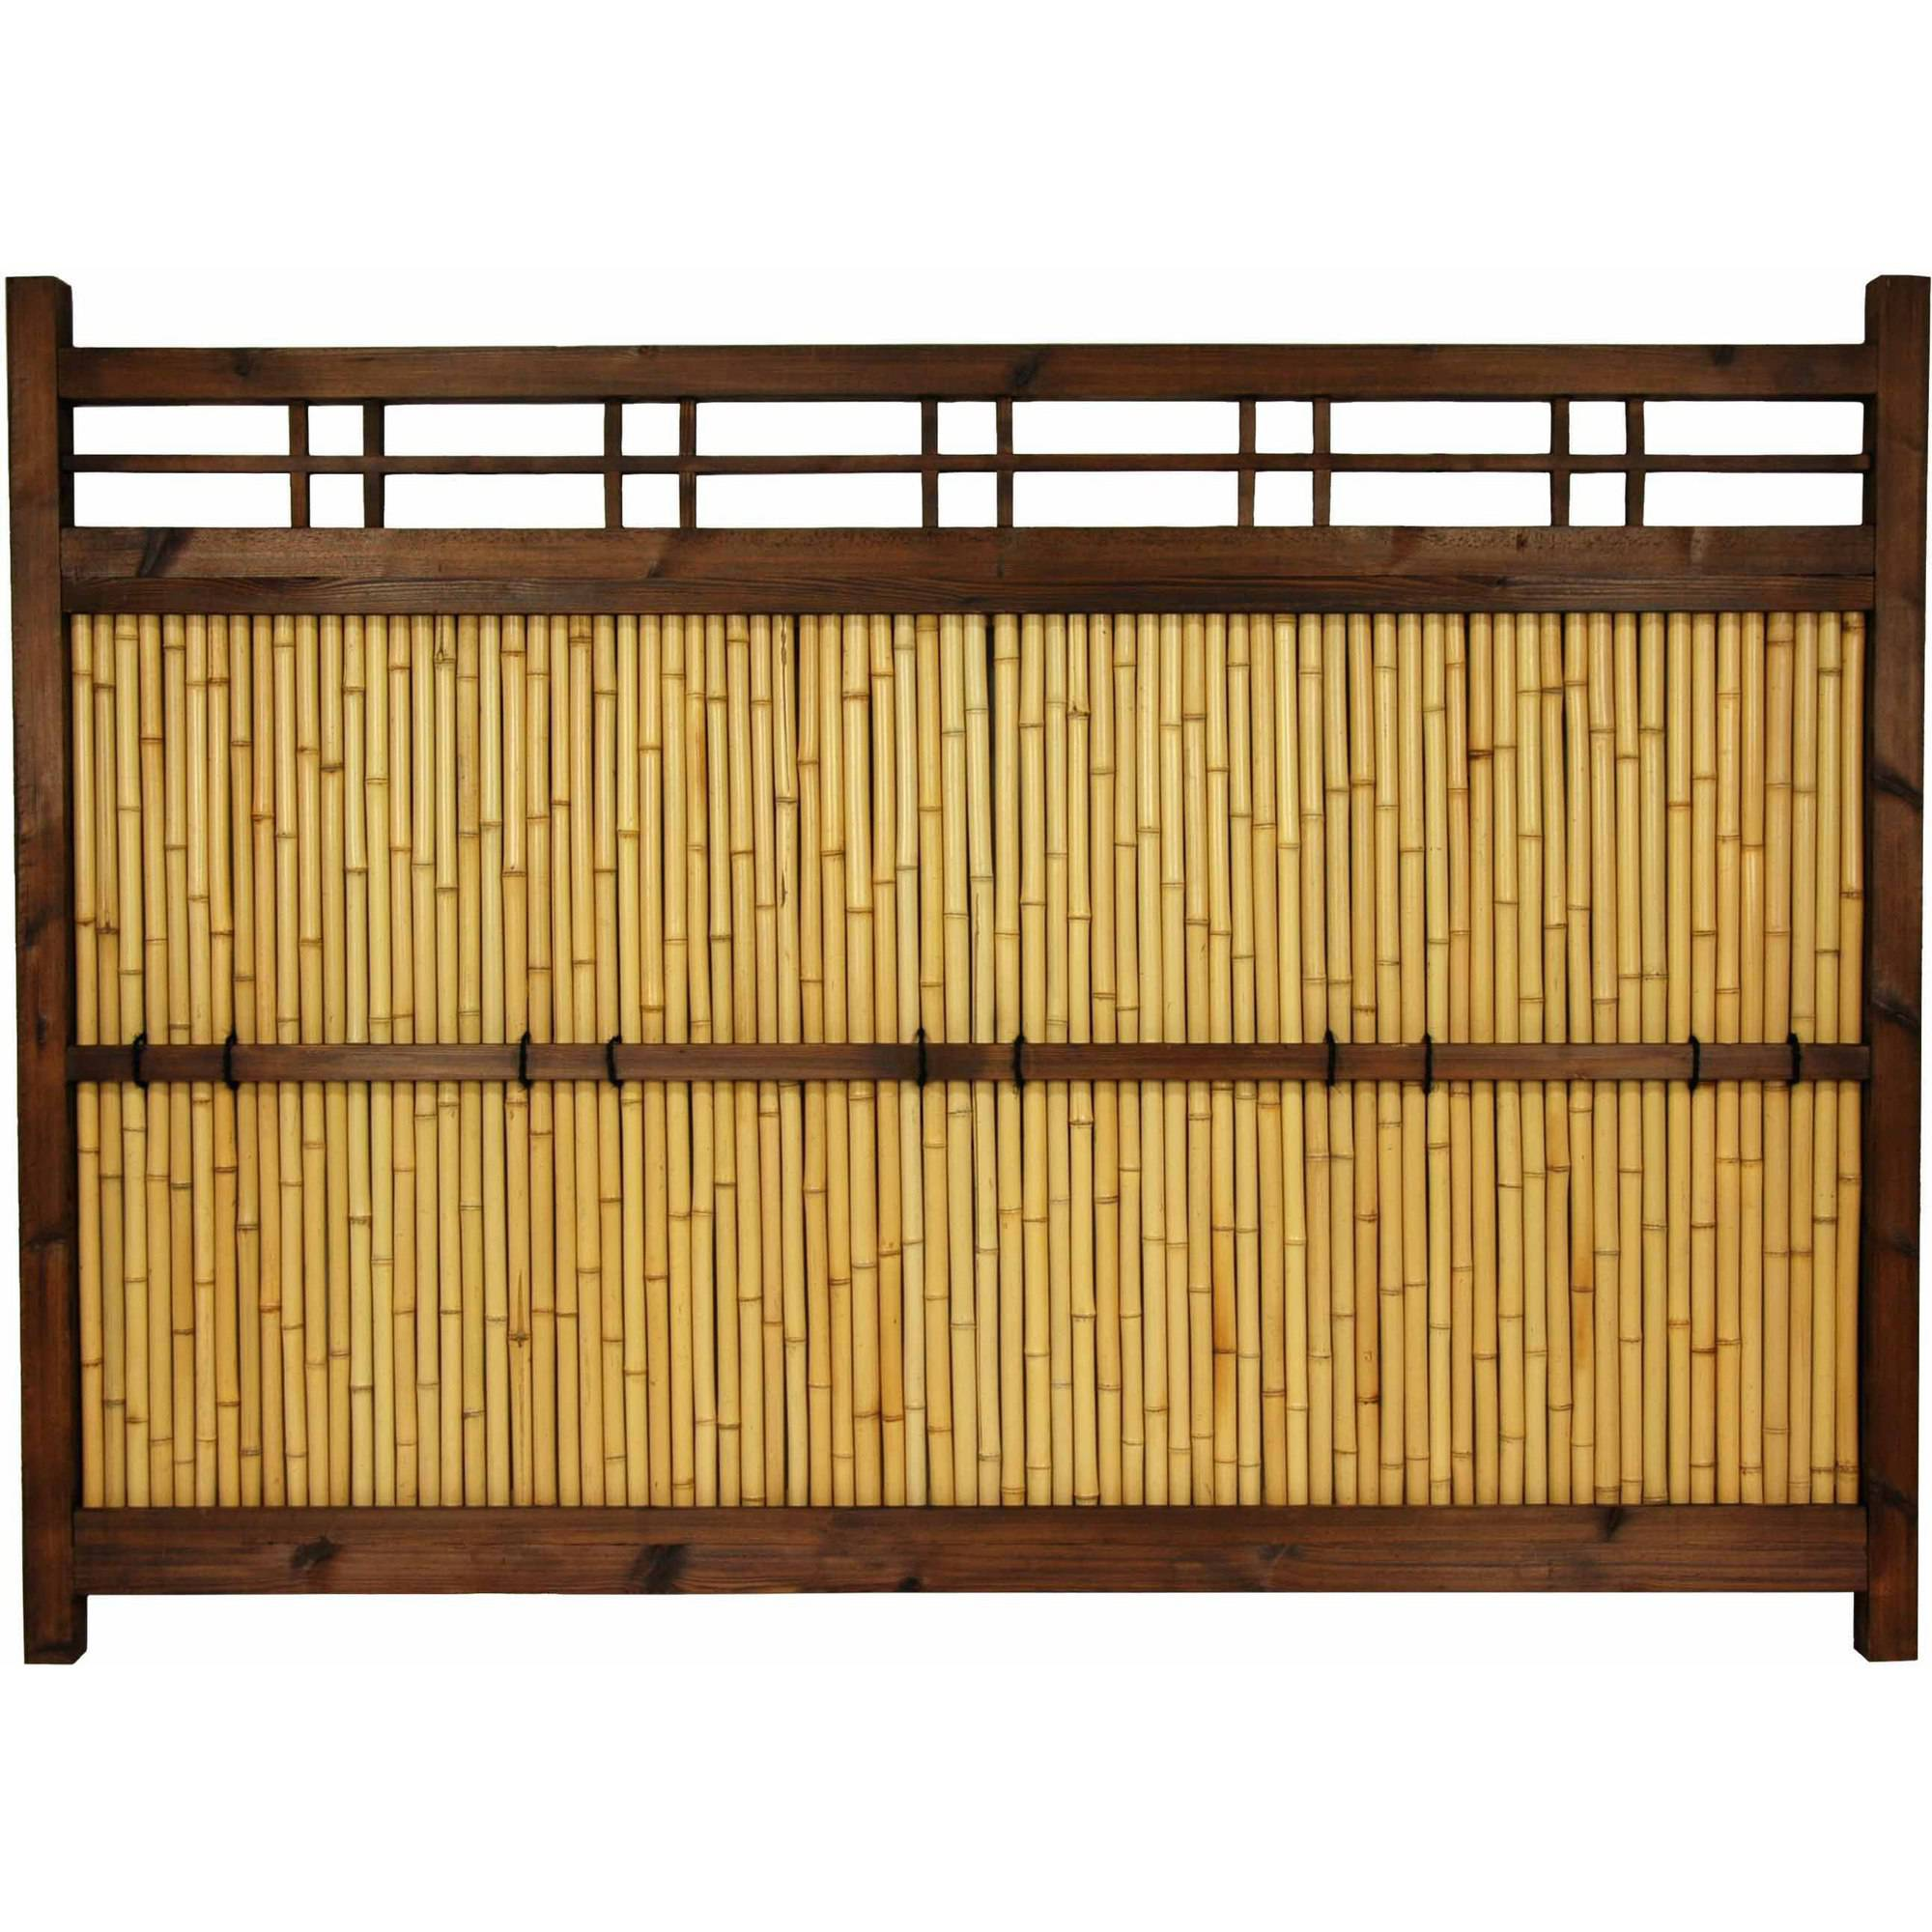 4' x 5-1 2' Japanese Bamboo Kumo Fence (B) by Oriental Furniture